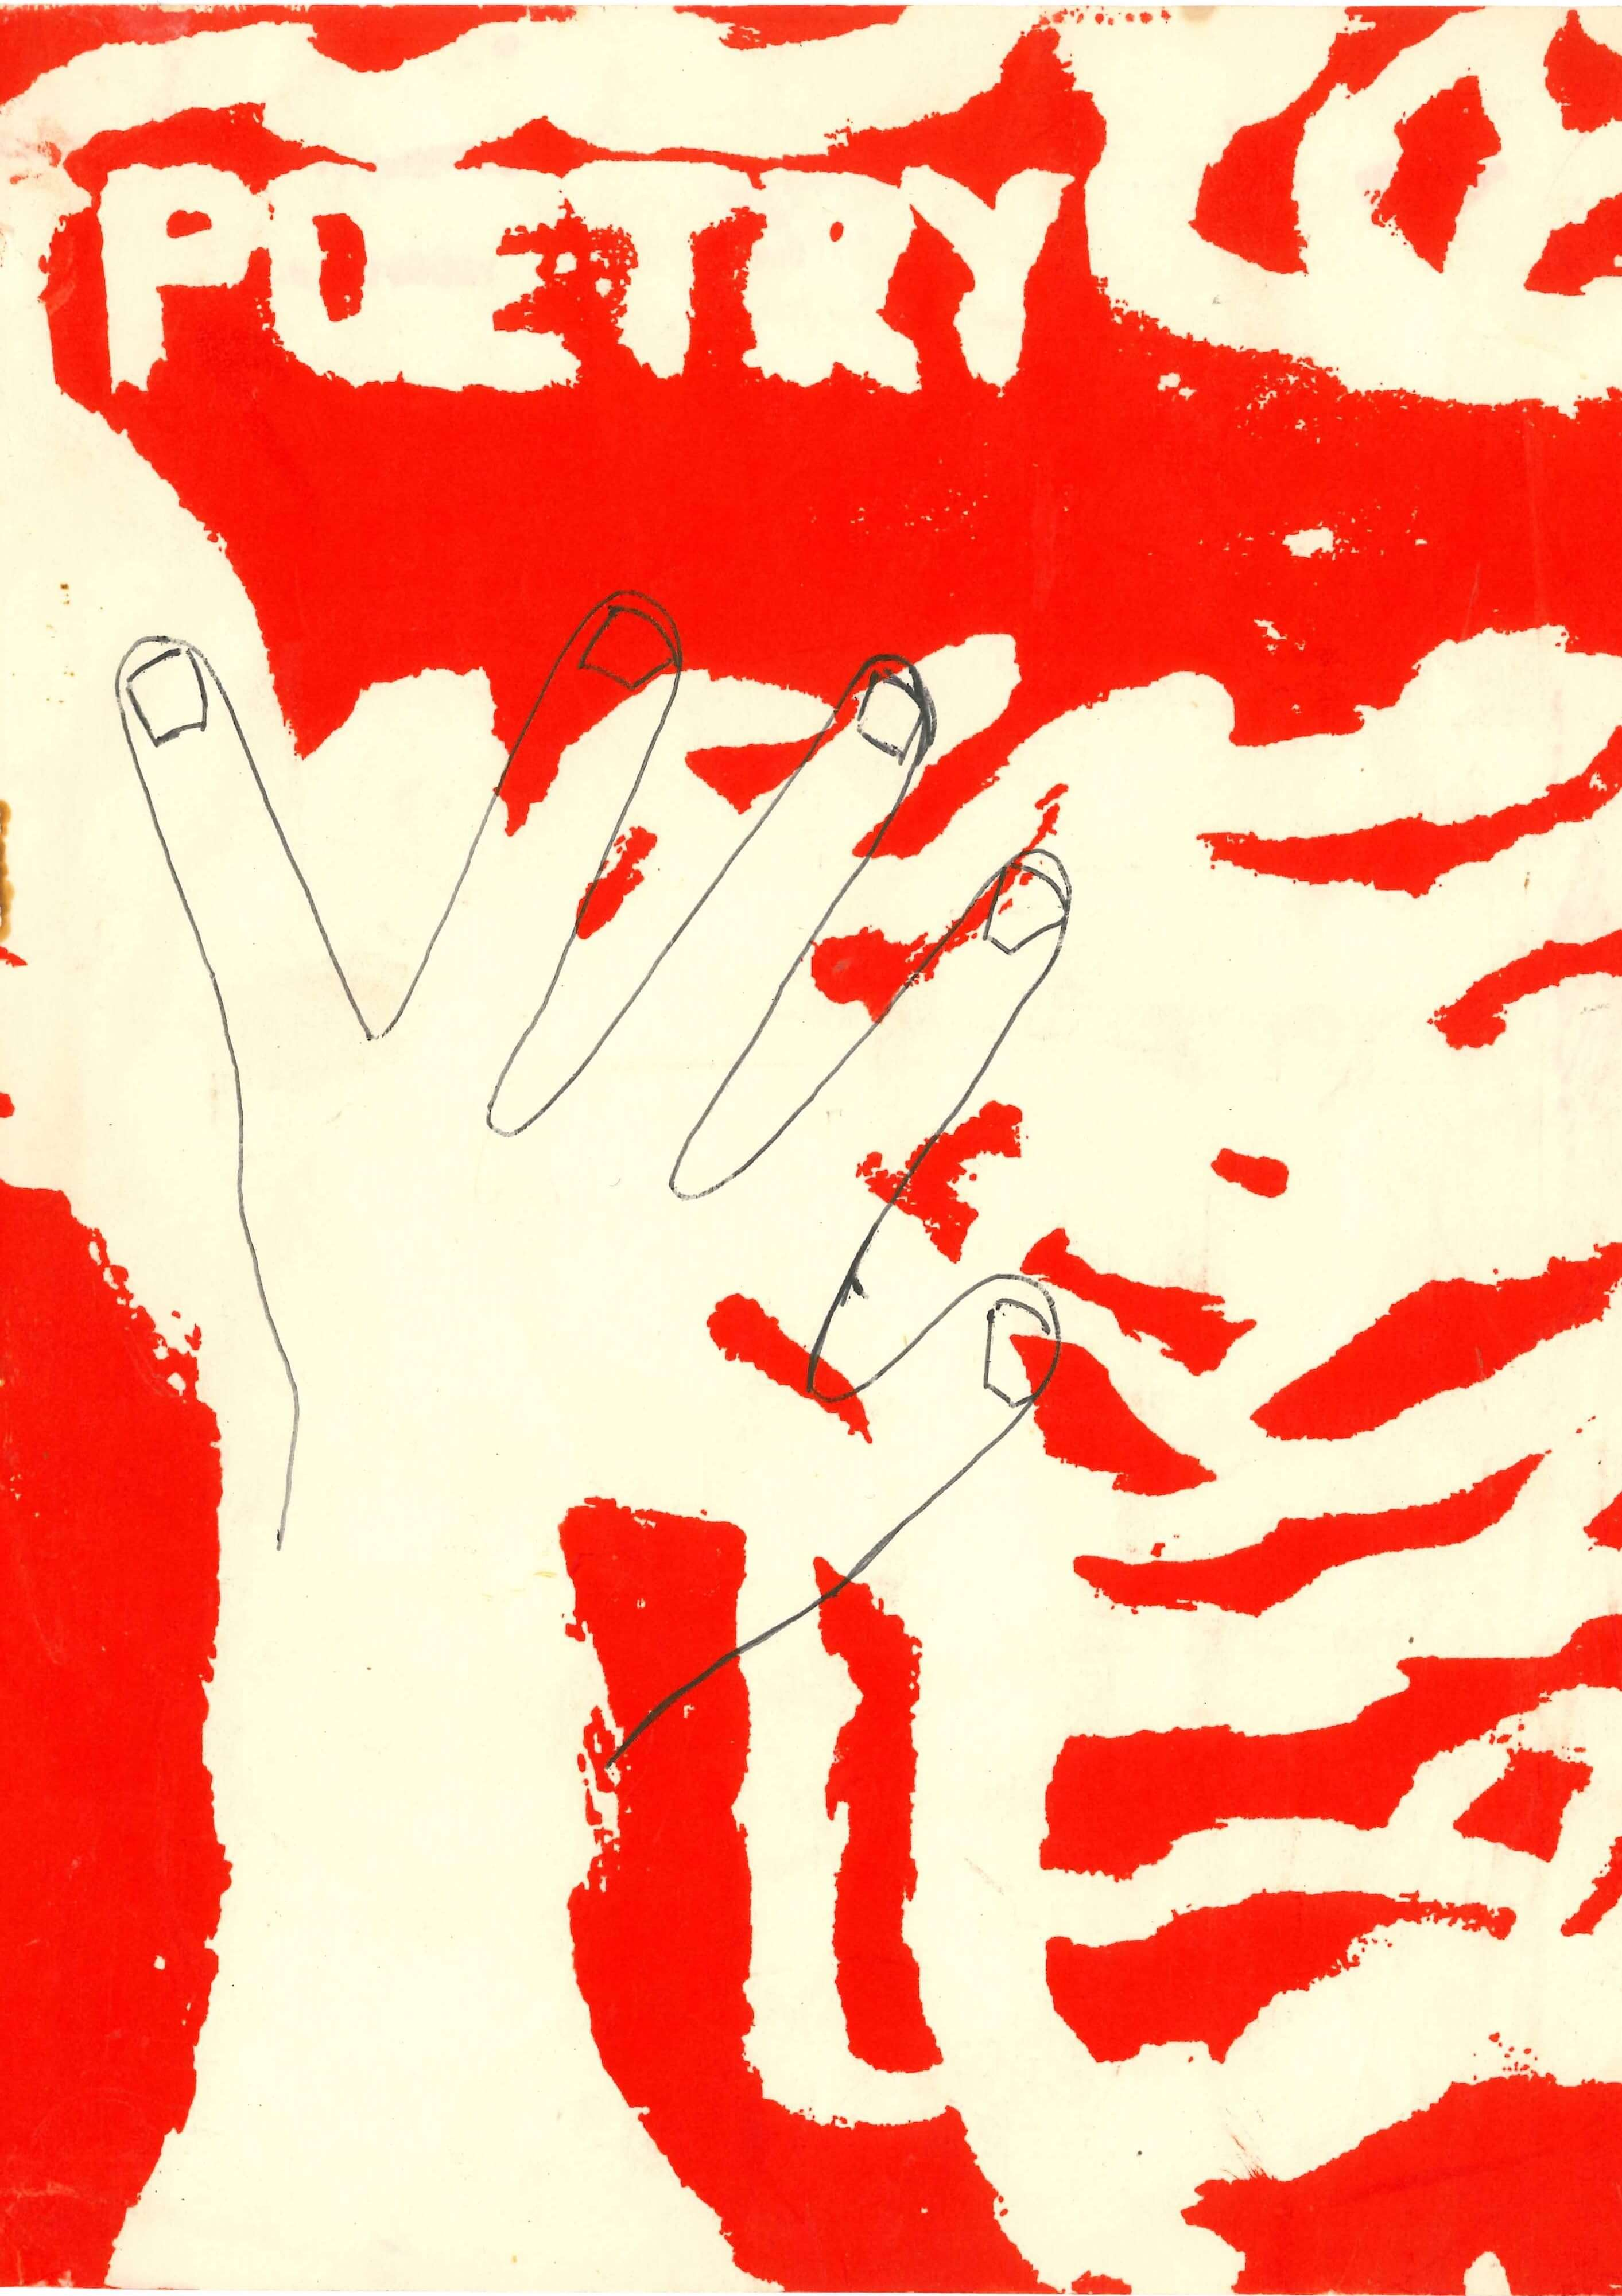 Front cover, showing hand painted abstract design in red and white, with the outline of a hand drawn across the front.